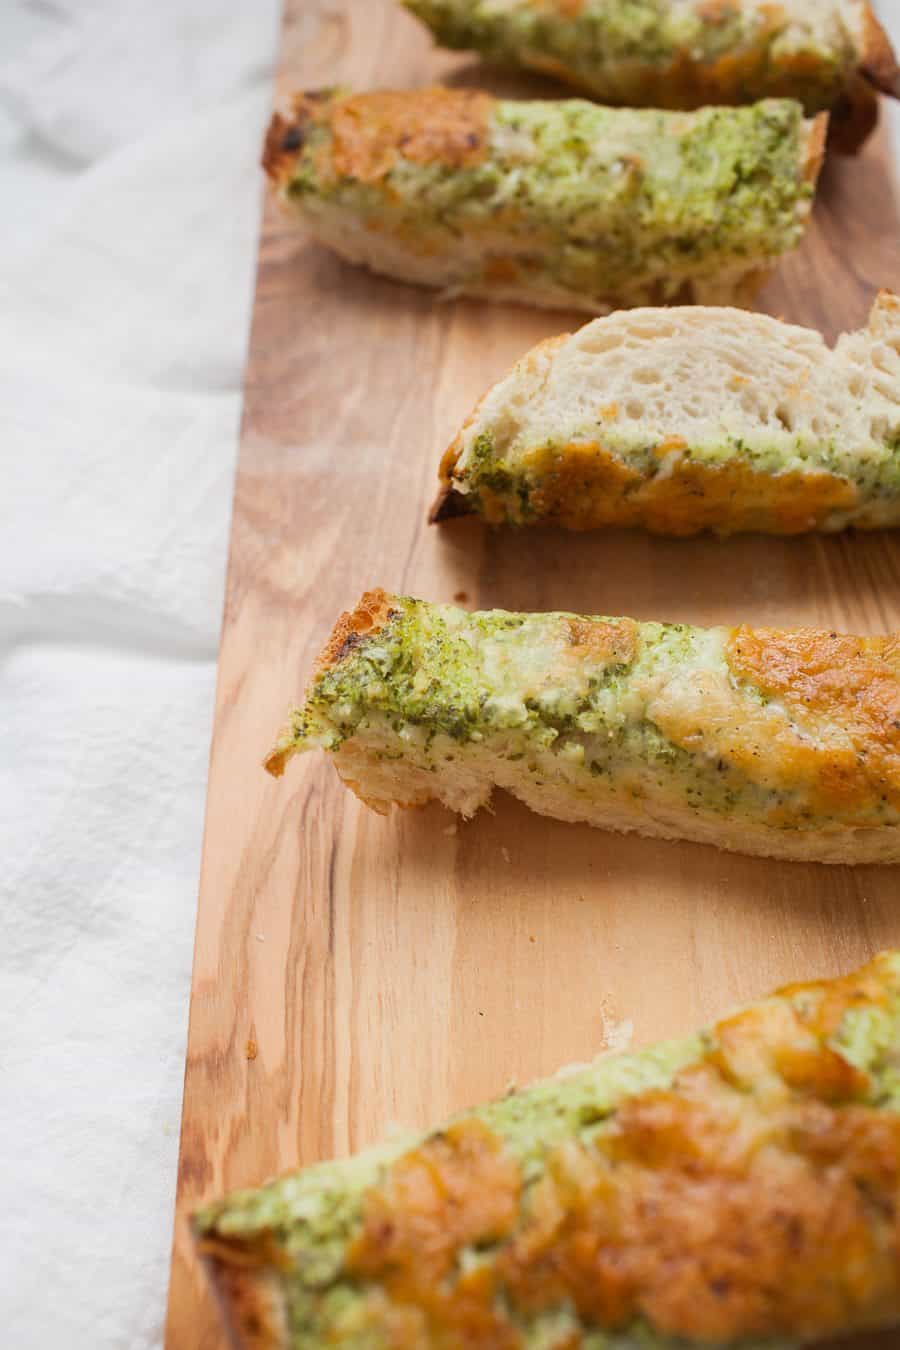 Cheesy Ranch French Bread makes a perfect pre-dinner appetizer! It's great for a crowd or just for your family while dinner finishes cooking. Made with homemade ranch dressing, this french bread is packed with fresh ingredients and will make the wait for dinner much more enjoyable.